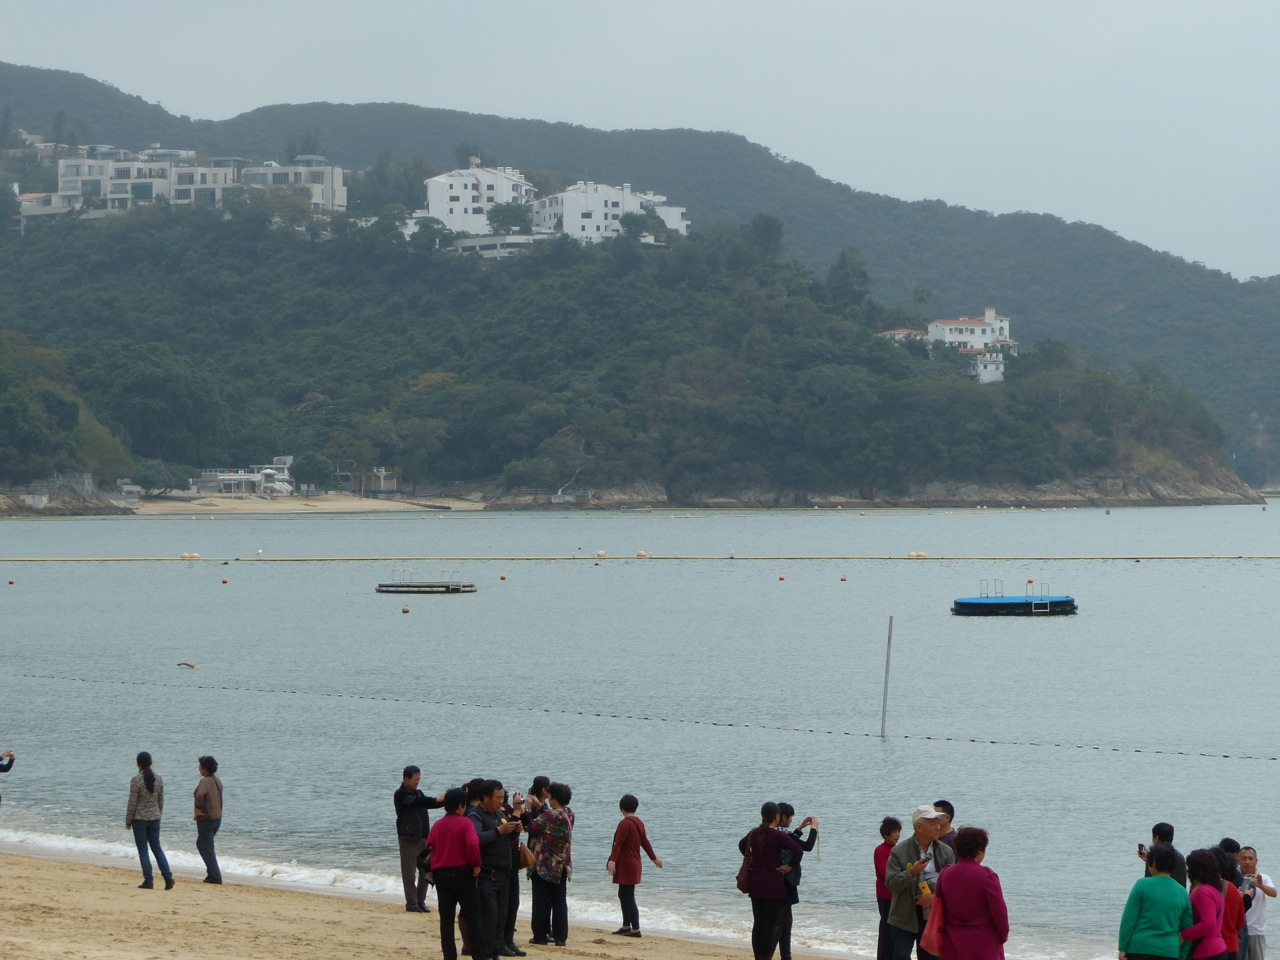 Hong Kong beach.jpg